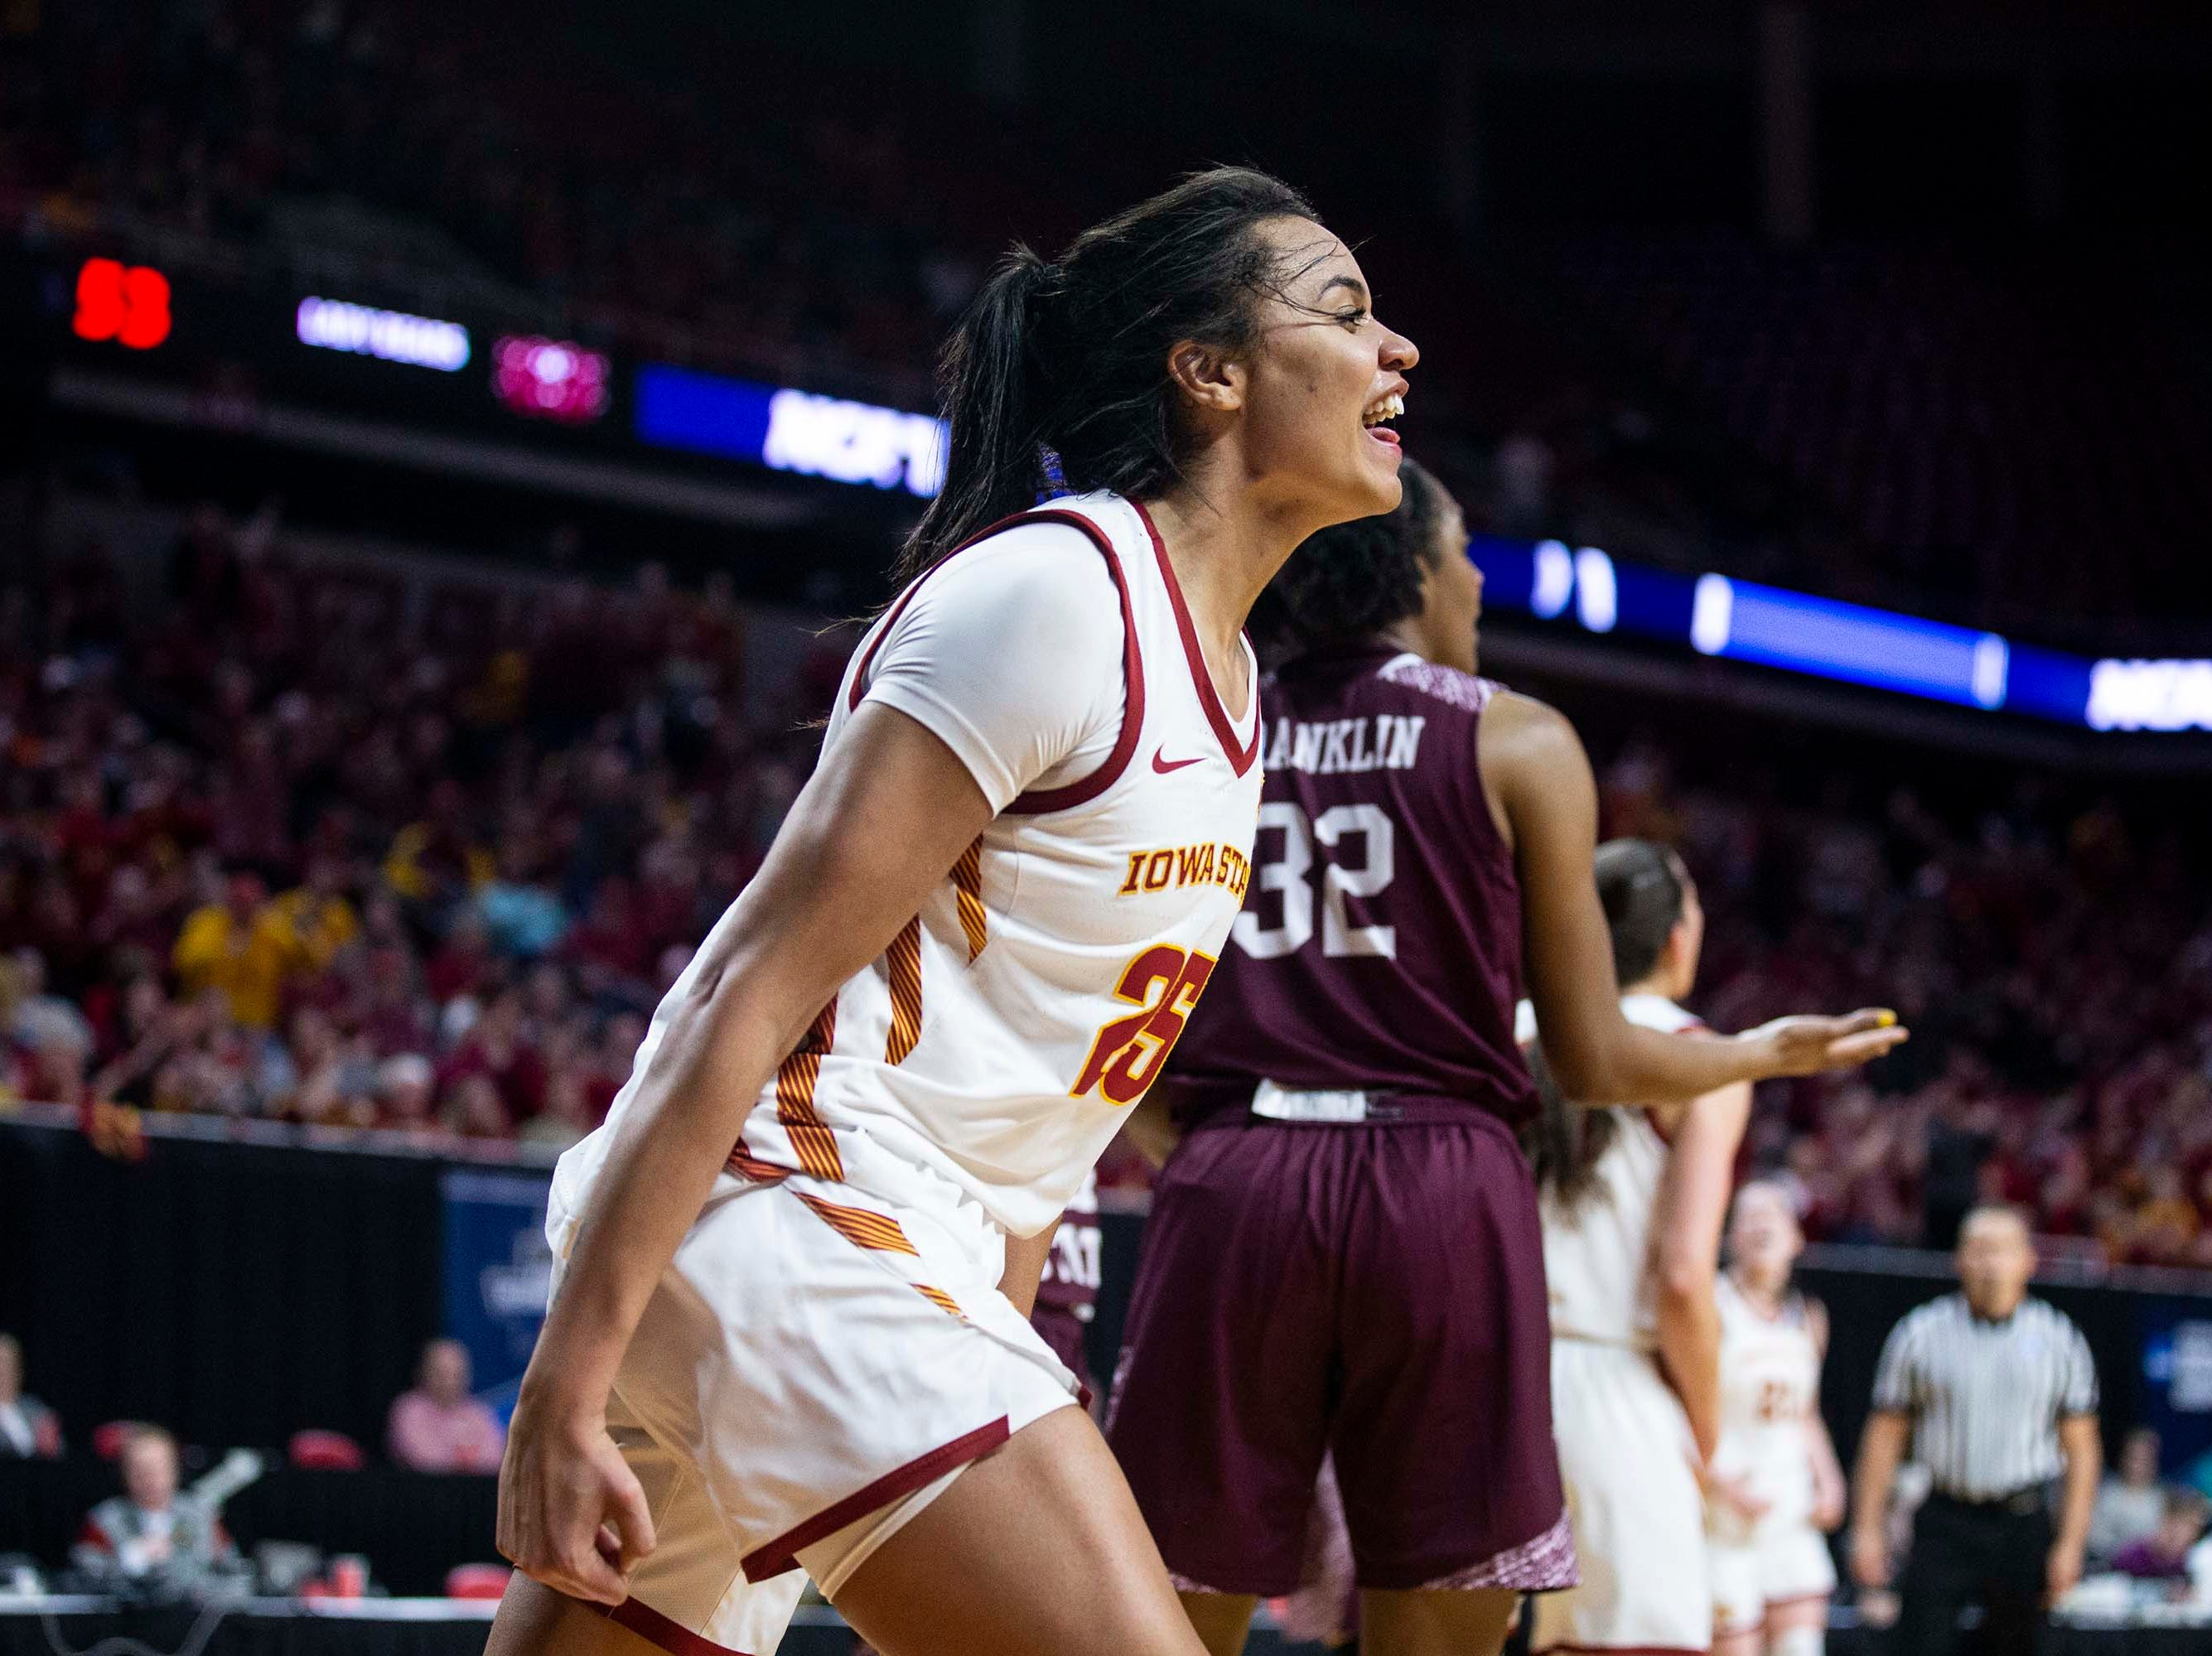 Iowa State's Kristin Scott celebrates after scoring during the NCAA Tournament second-round match-up between Iowa State and Missouri State on Monday, March 25, 2019, in Hilton Coliseum, in Ames, Iowa.